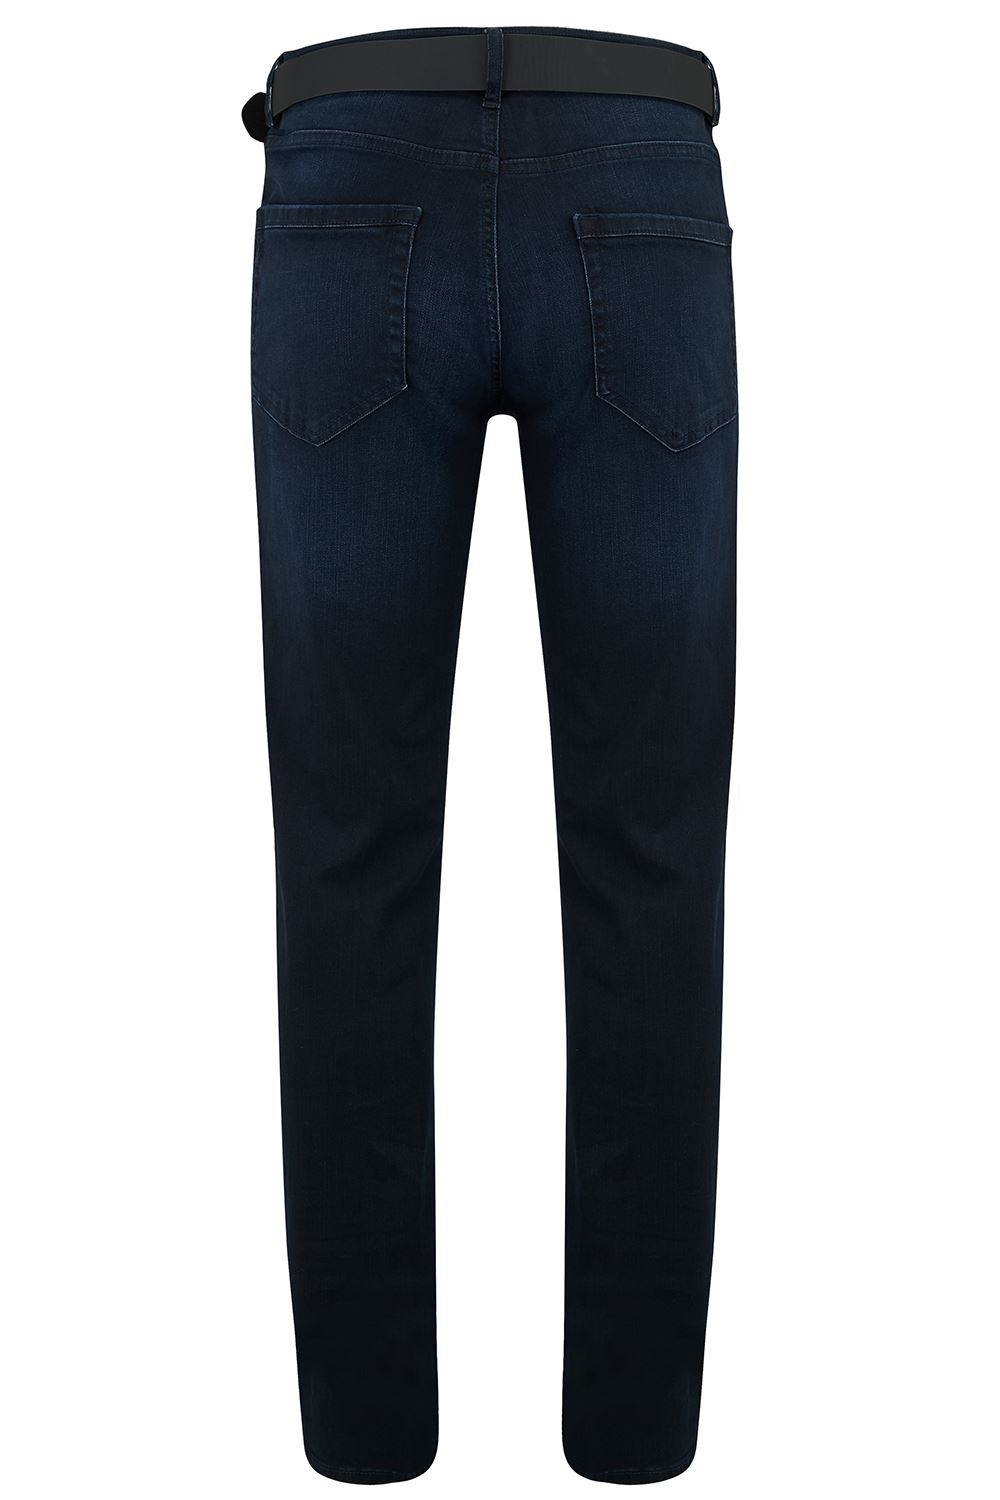 Mens-Indigo-Stretch-Cotton-Denim-Pants-Regular-Fit-Slim-Fit-Jeans